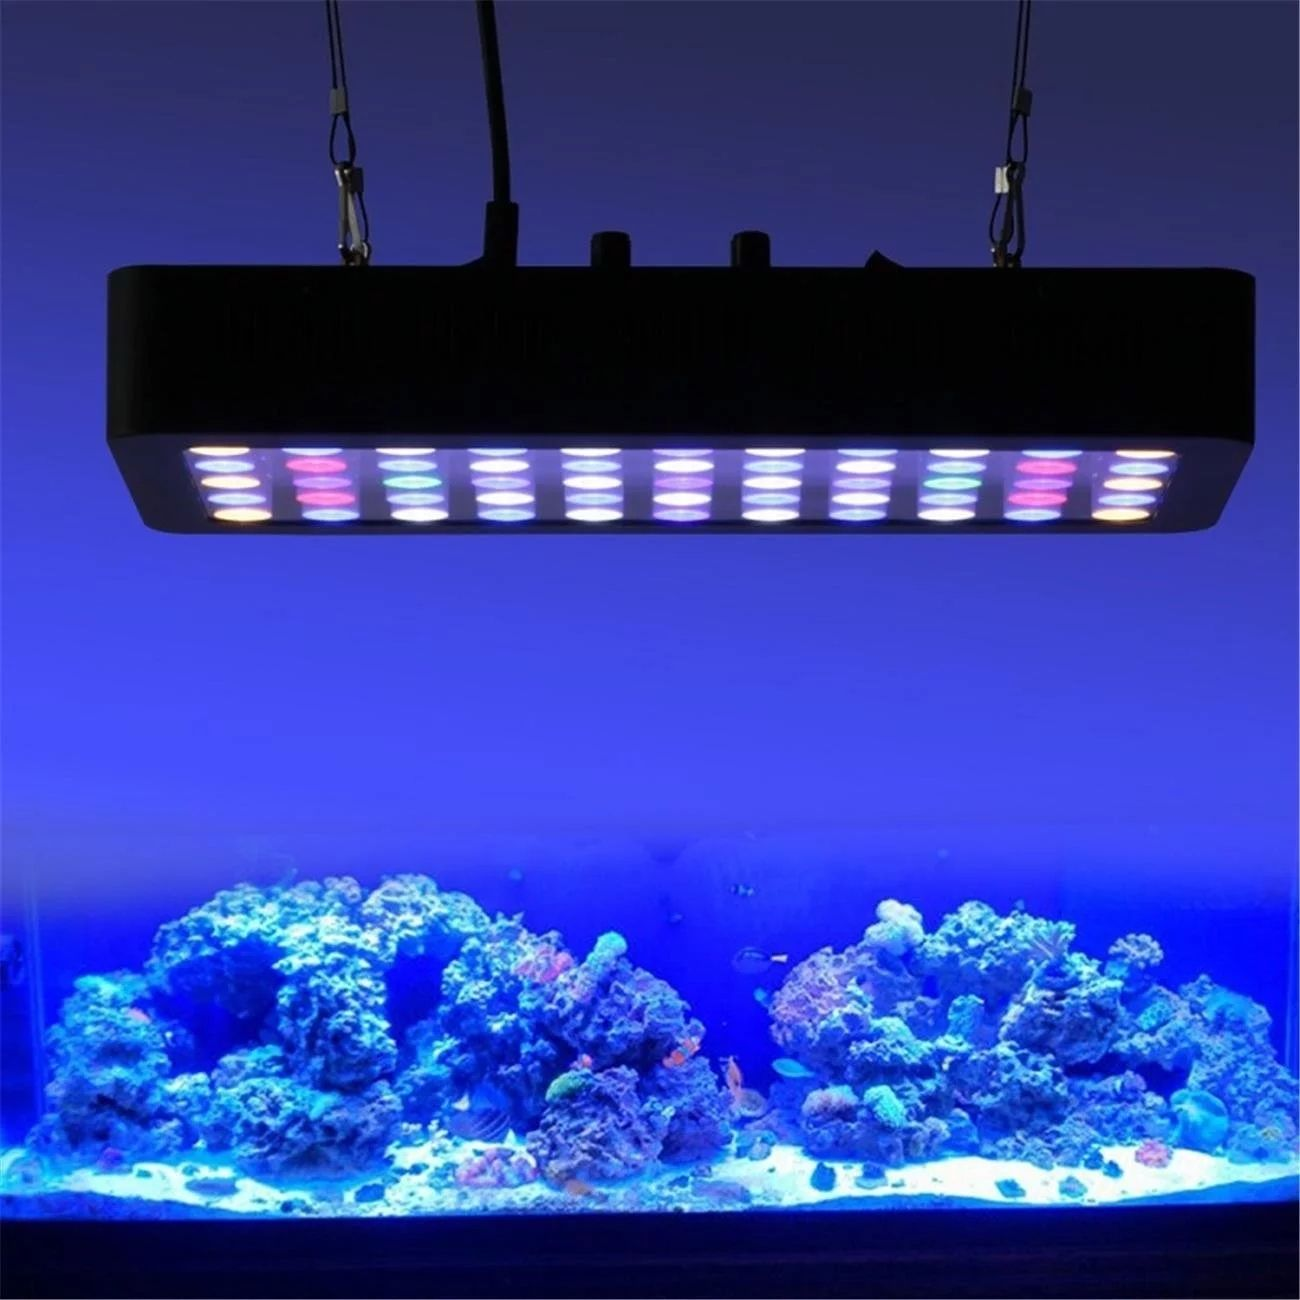 Chinaサプライヤーホット販売WiFi 165ワット調光対応アプリControl LED Aquarium Light Full Spectrum Coral Reef Marine水槽